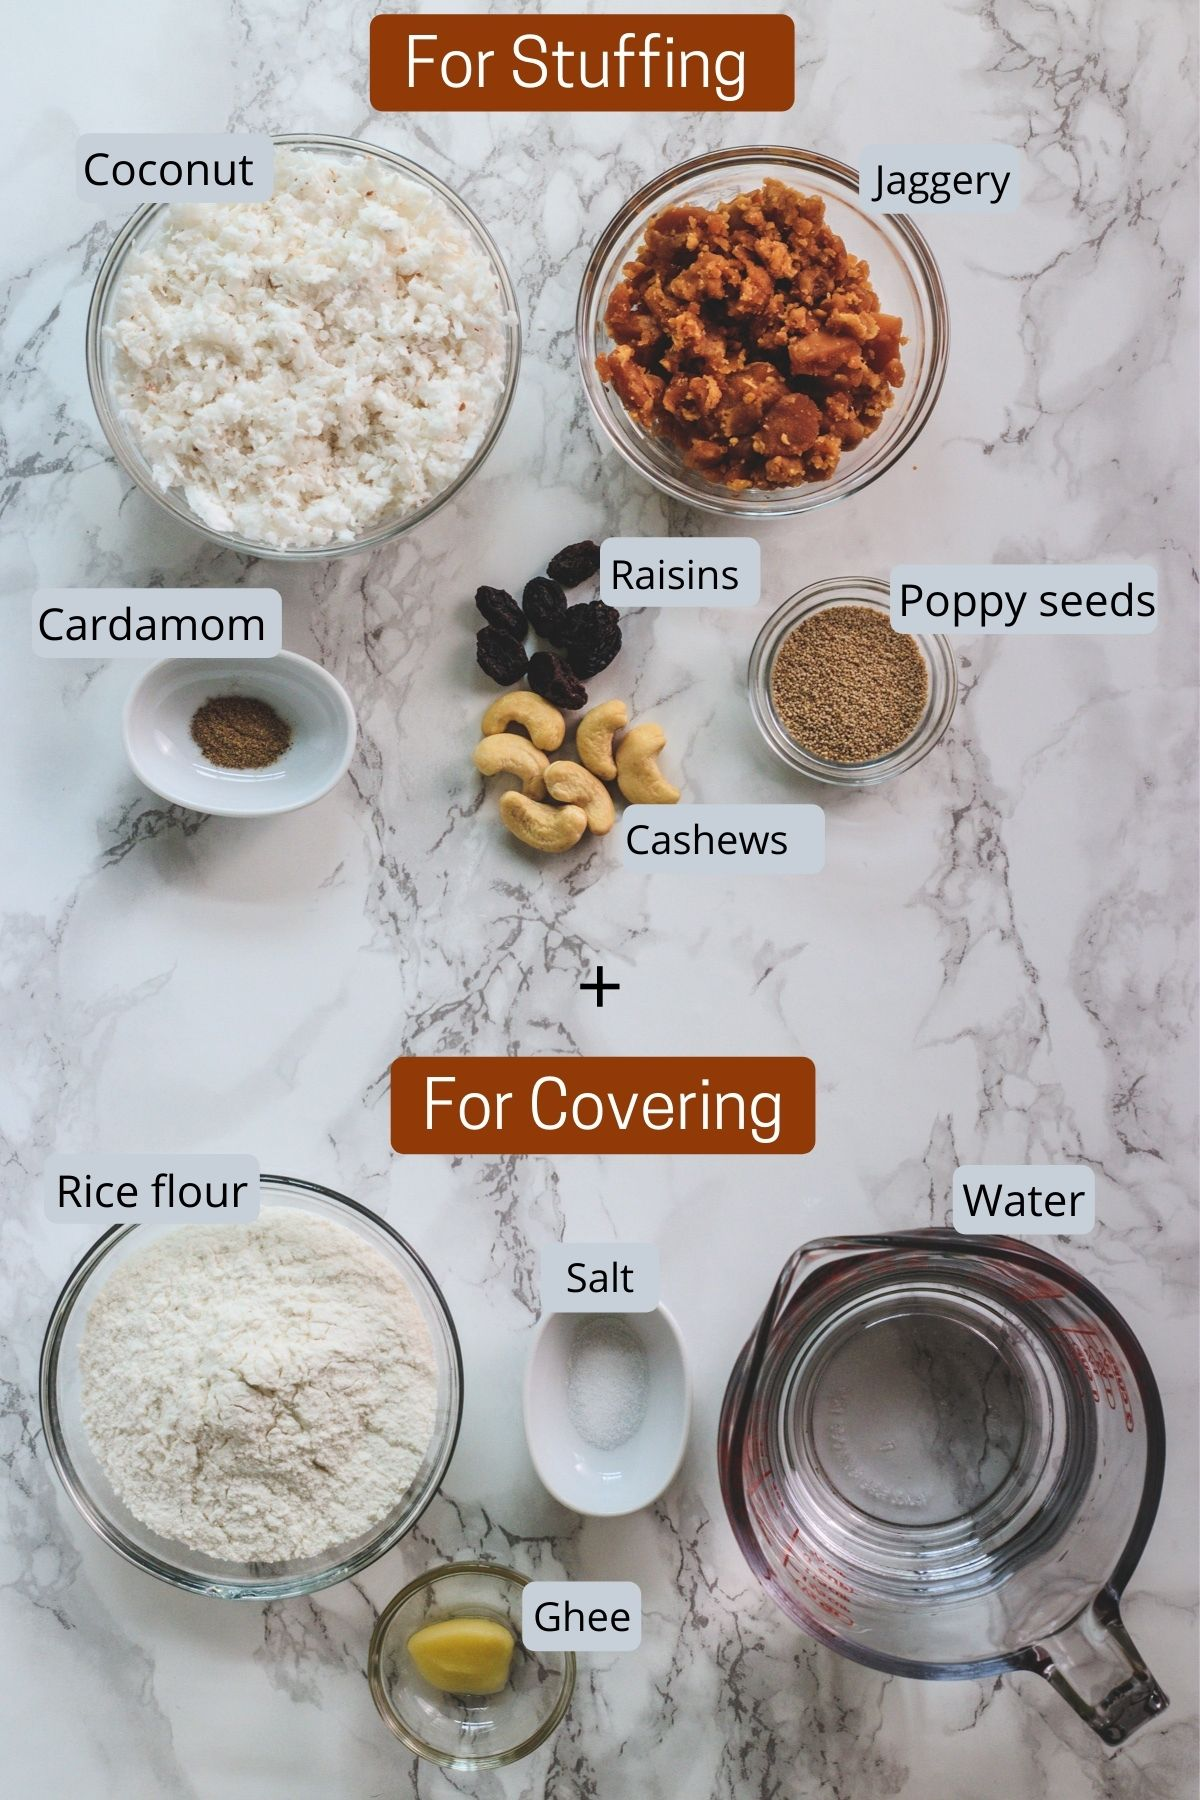 image of ingredients using in making stuffing and outer covering dough for ukadiche modak